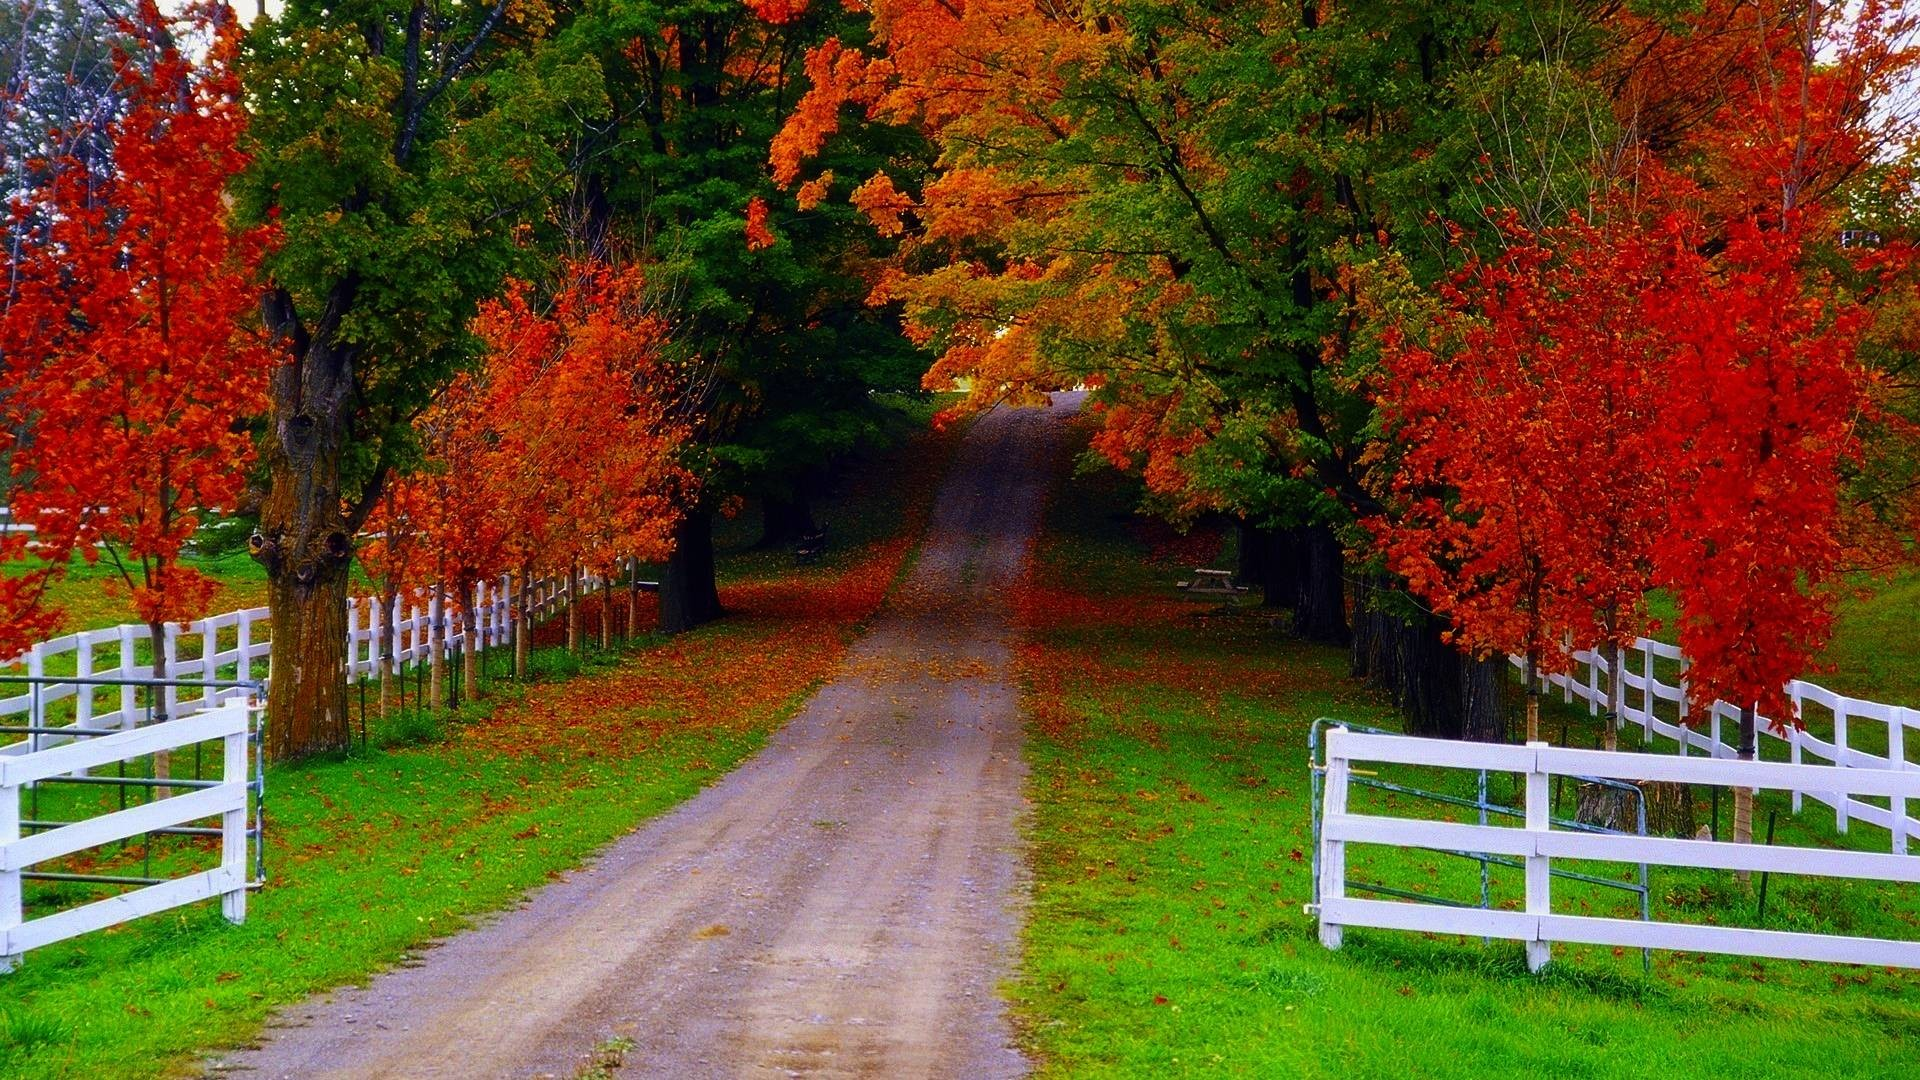 Wallpapers For > Cool Fall Wallpapers For Desktop   Nature Beautiful  Pictures   Pinterest   Fall wallpaper and Nature wallpaper